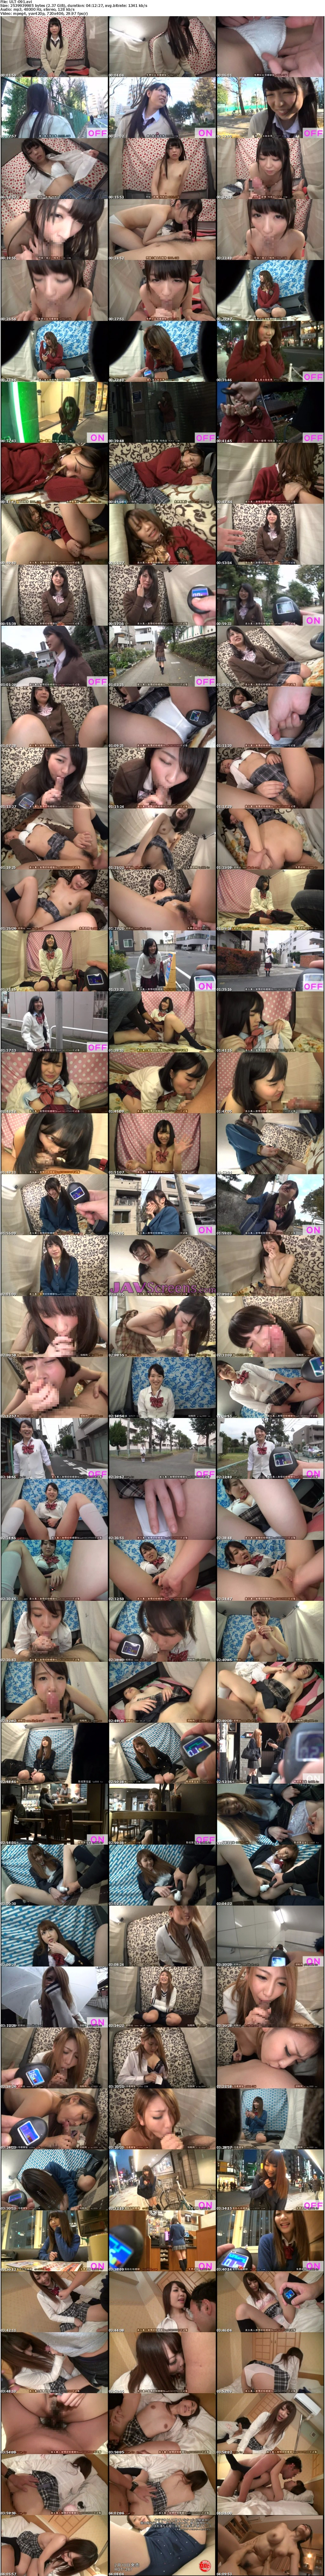 ULT-091.jpg - JAV Screenshot